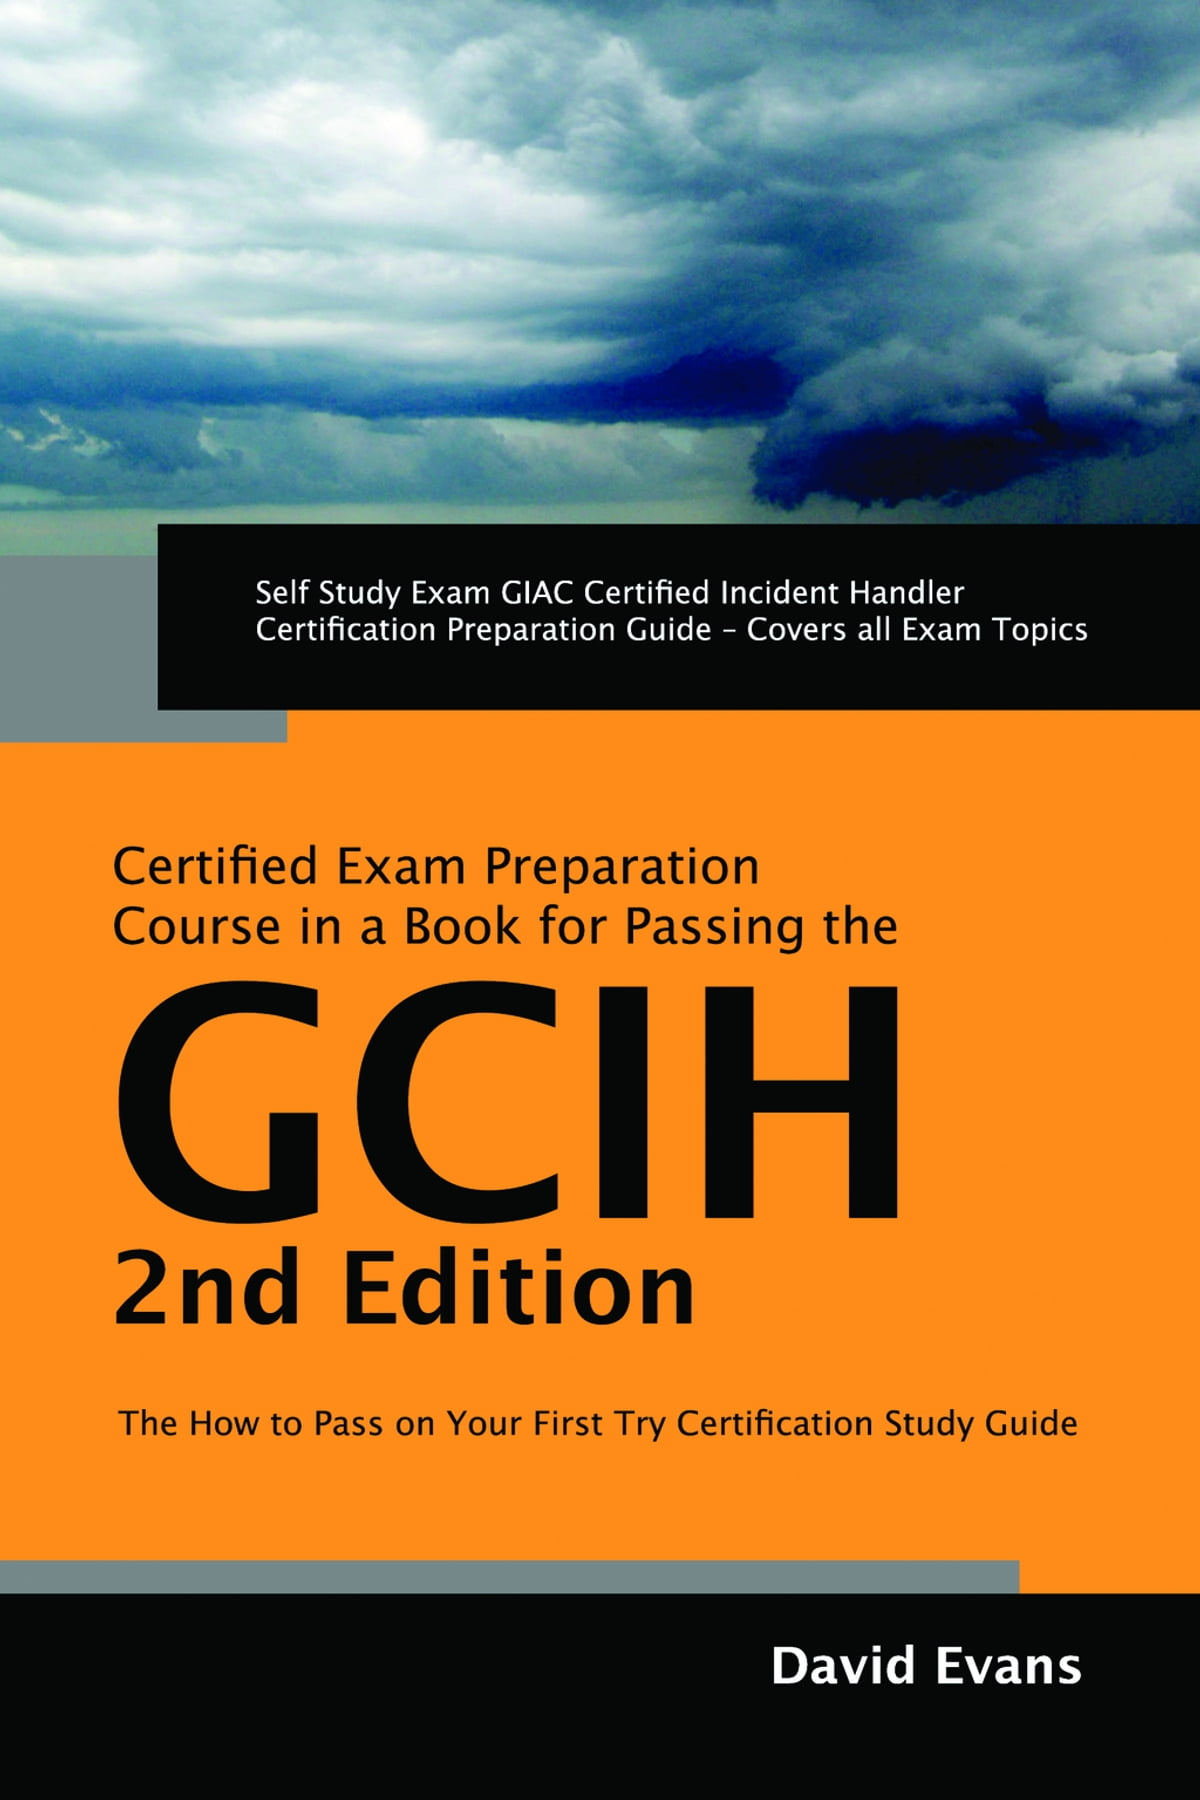 Giac certified incident handler certification gcih exam giac certified incident handler certification gcih exam preparation course in a book for passing the gcih exam the how to pass on your first try xflitez Image collections